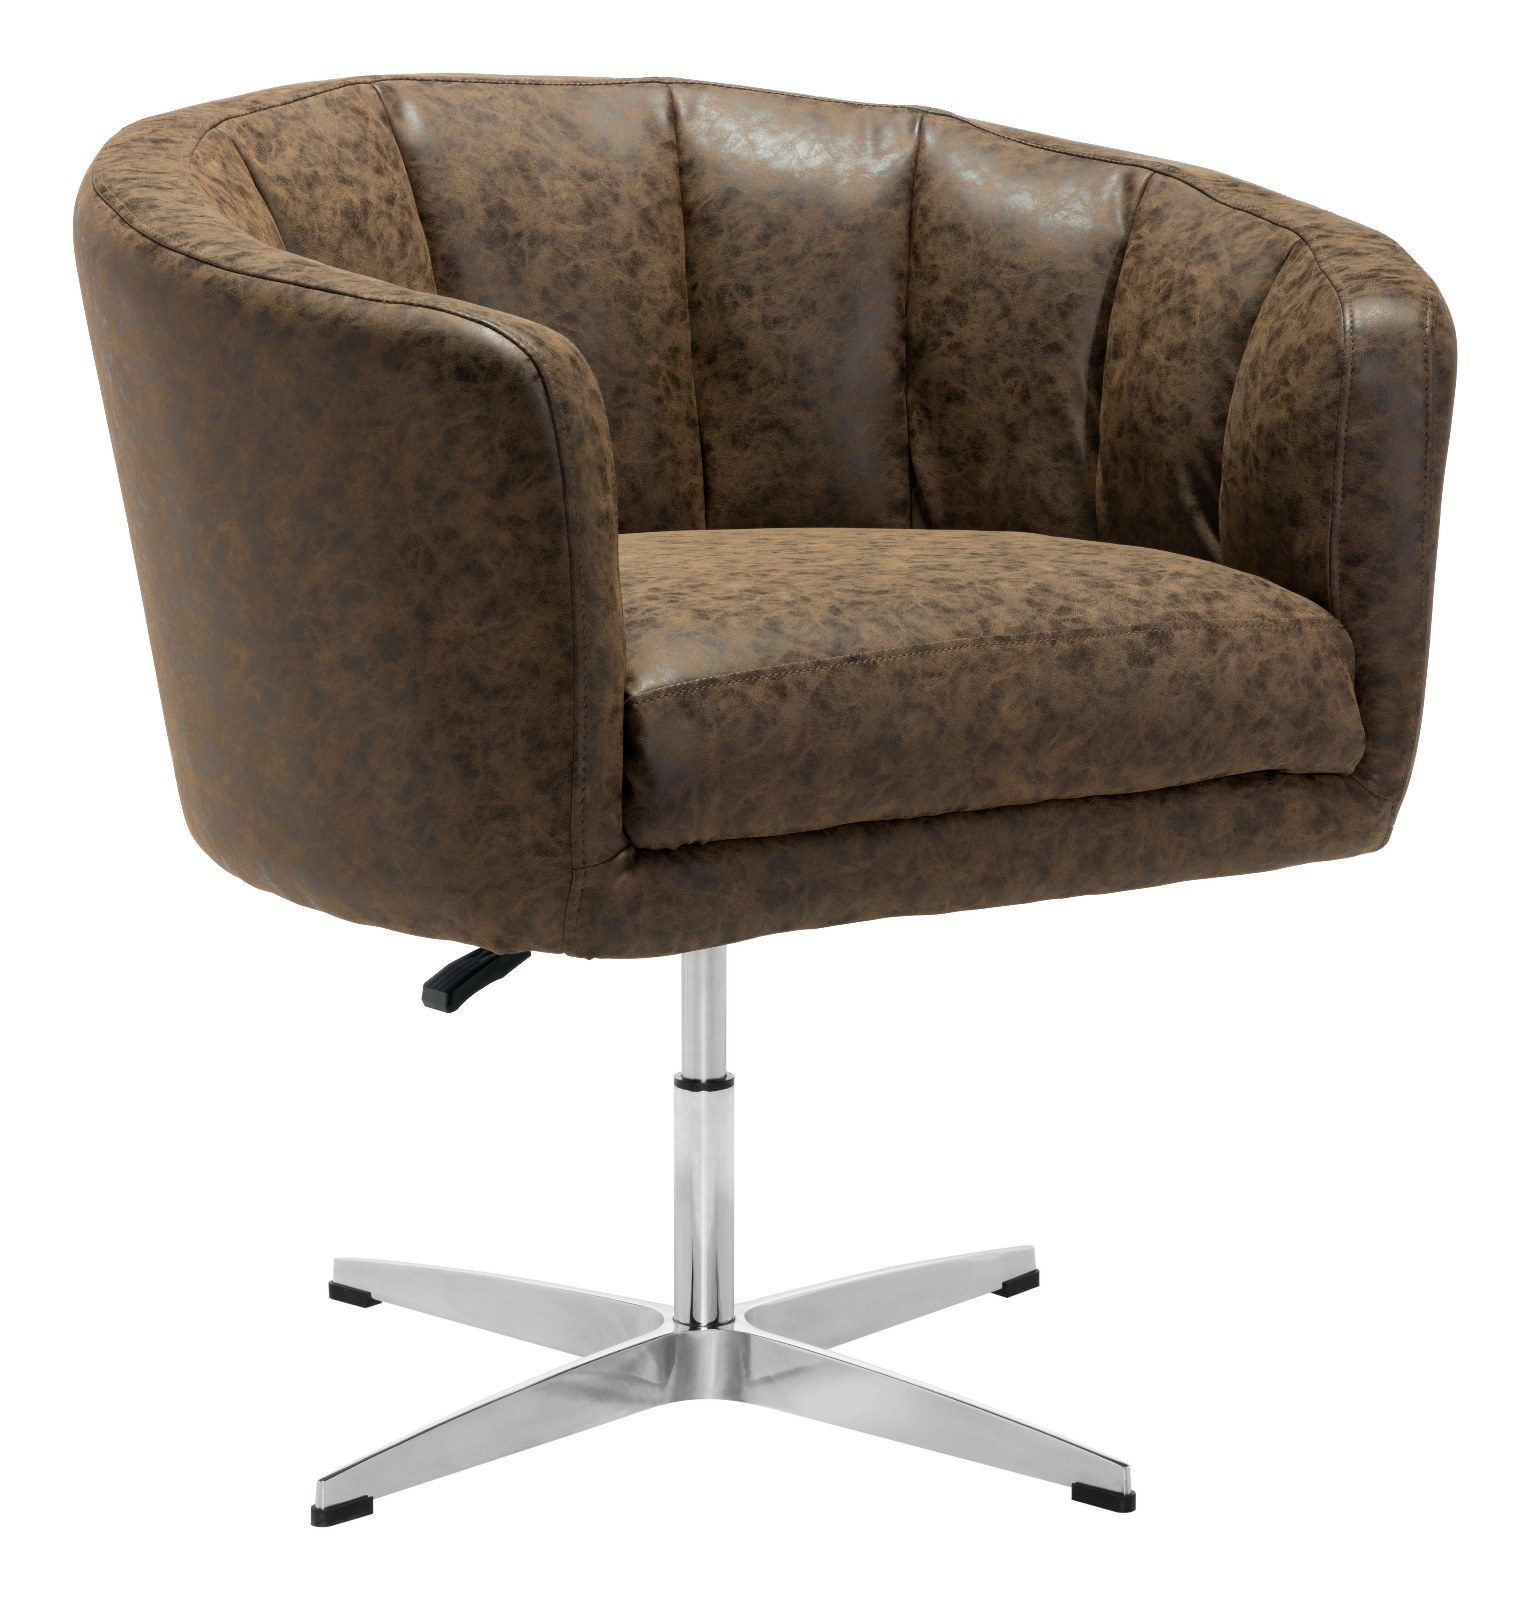 Modern Contemporary Urban Living Lounge Room Occasional Chair, Brown - Faux Leather Leatherette Aluminium